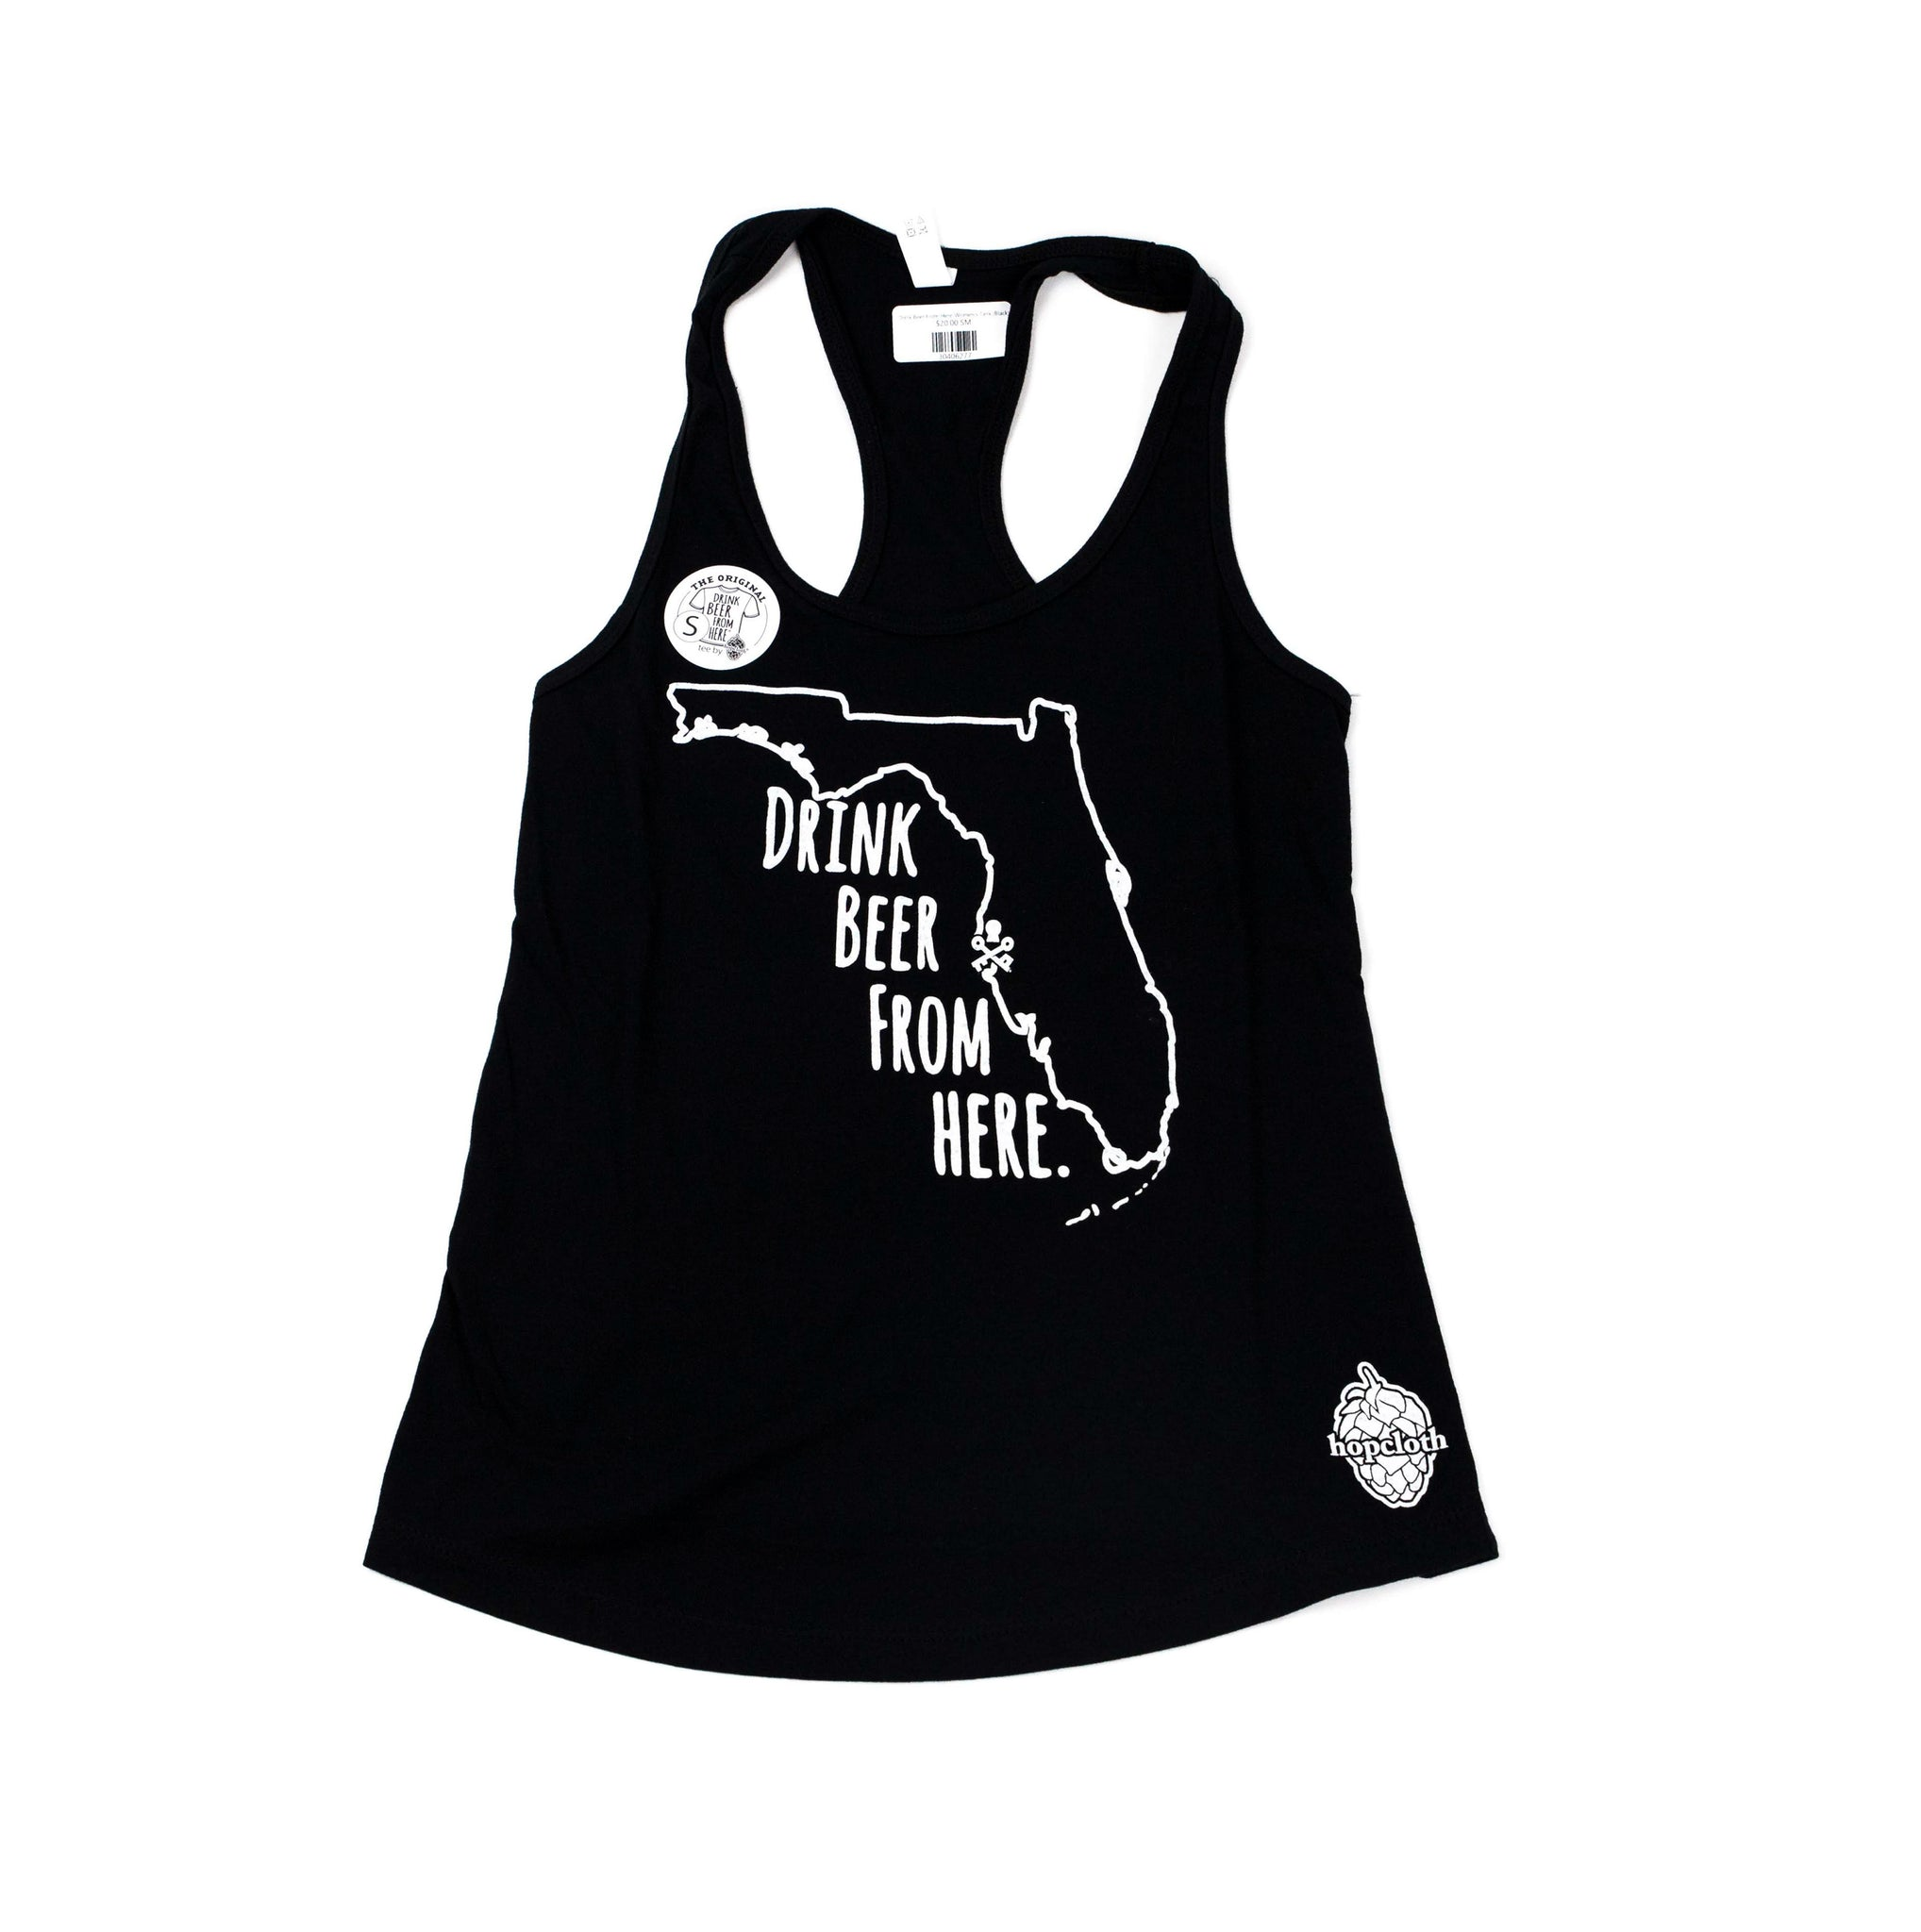 Drink Beer From Here - Women's Tank (Black)